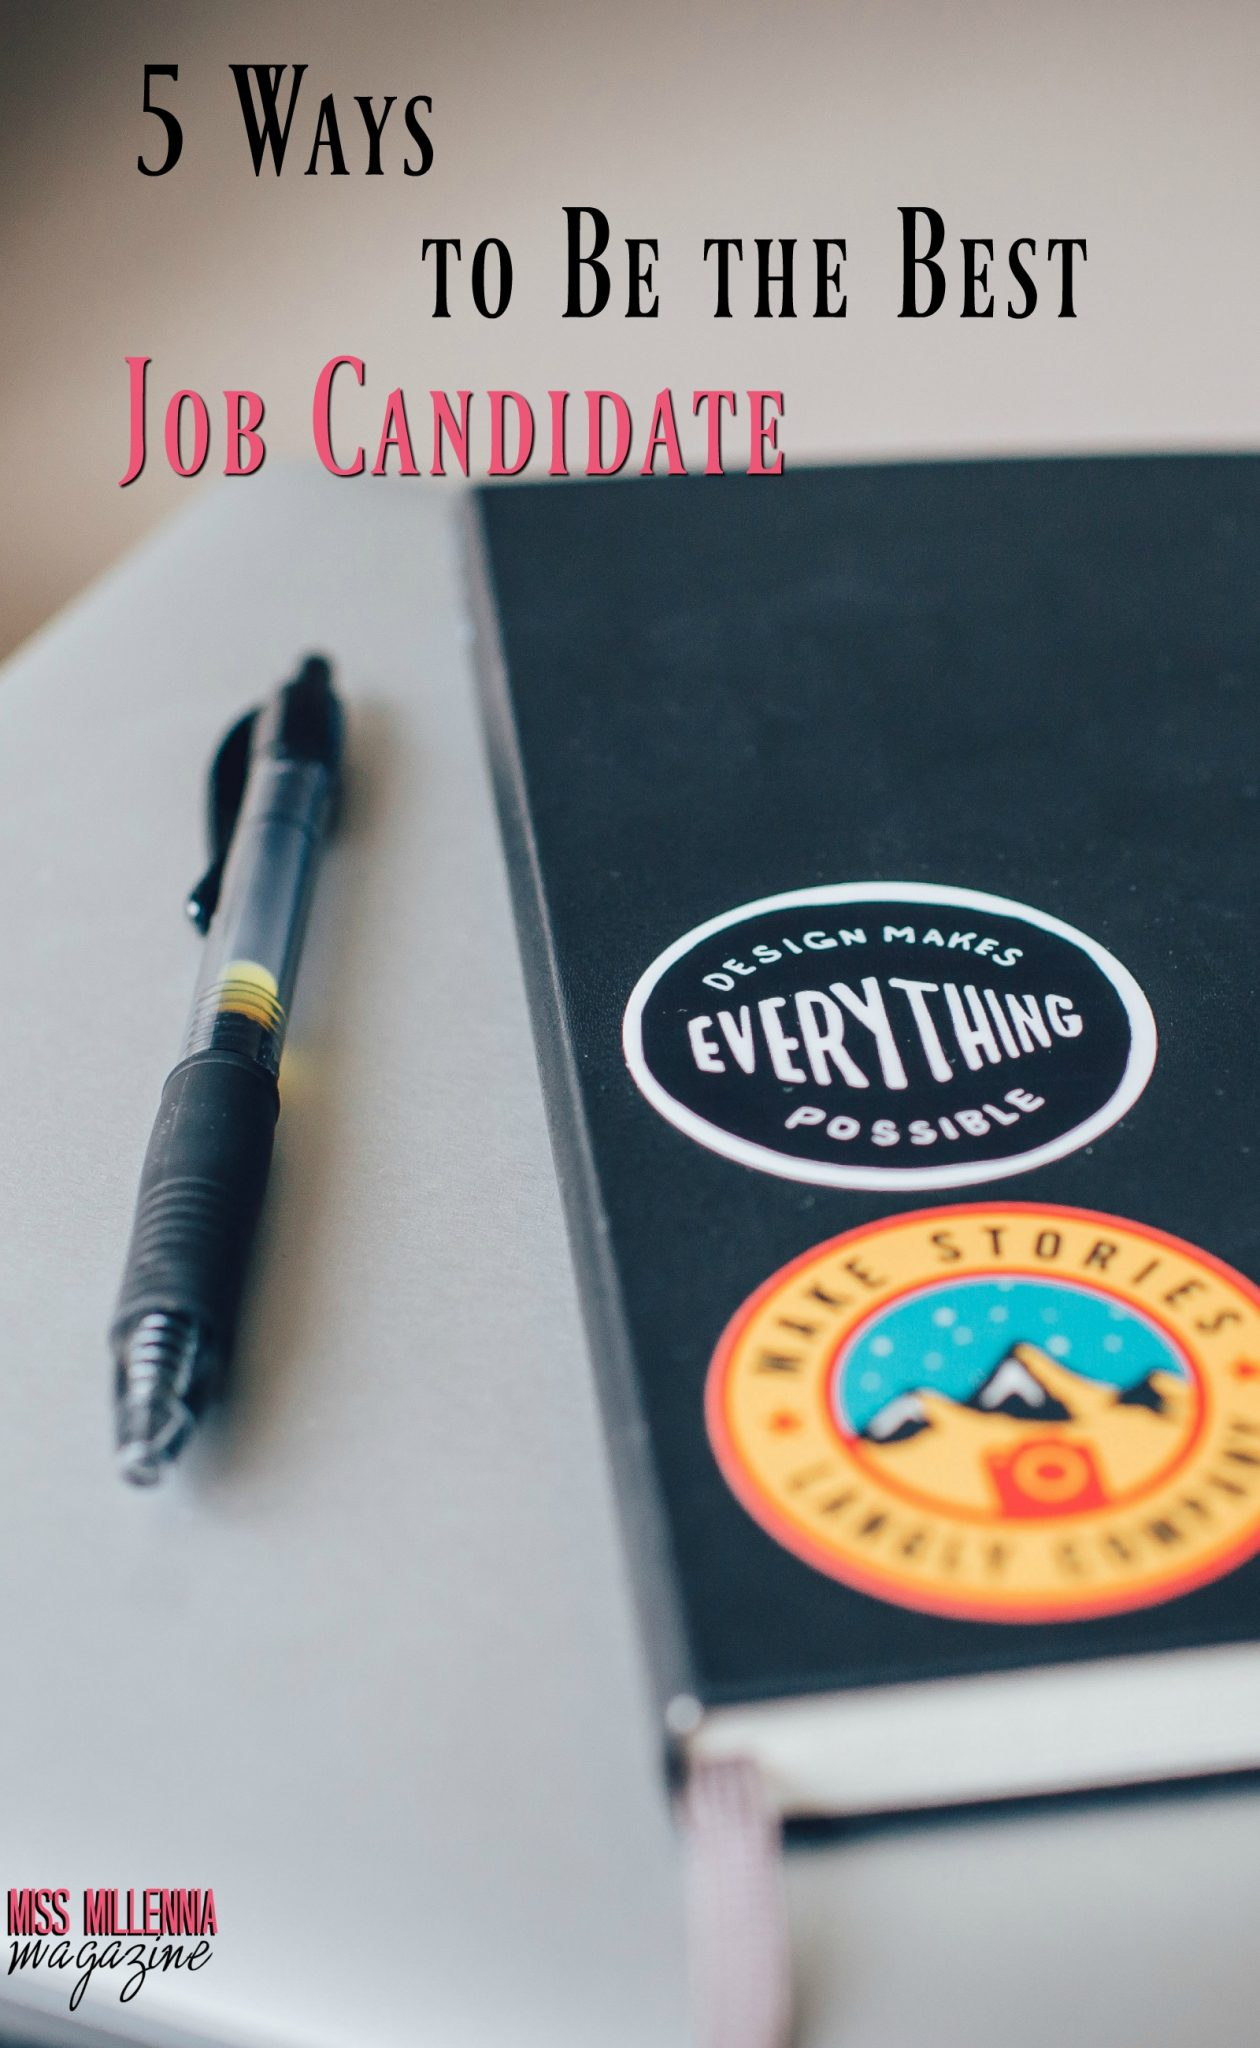 Unemployed and unmotivated? Don't worry. Read on for tips and tricks for job hunting, interviews, and wooing over employers and future bosses!